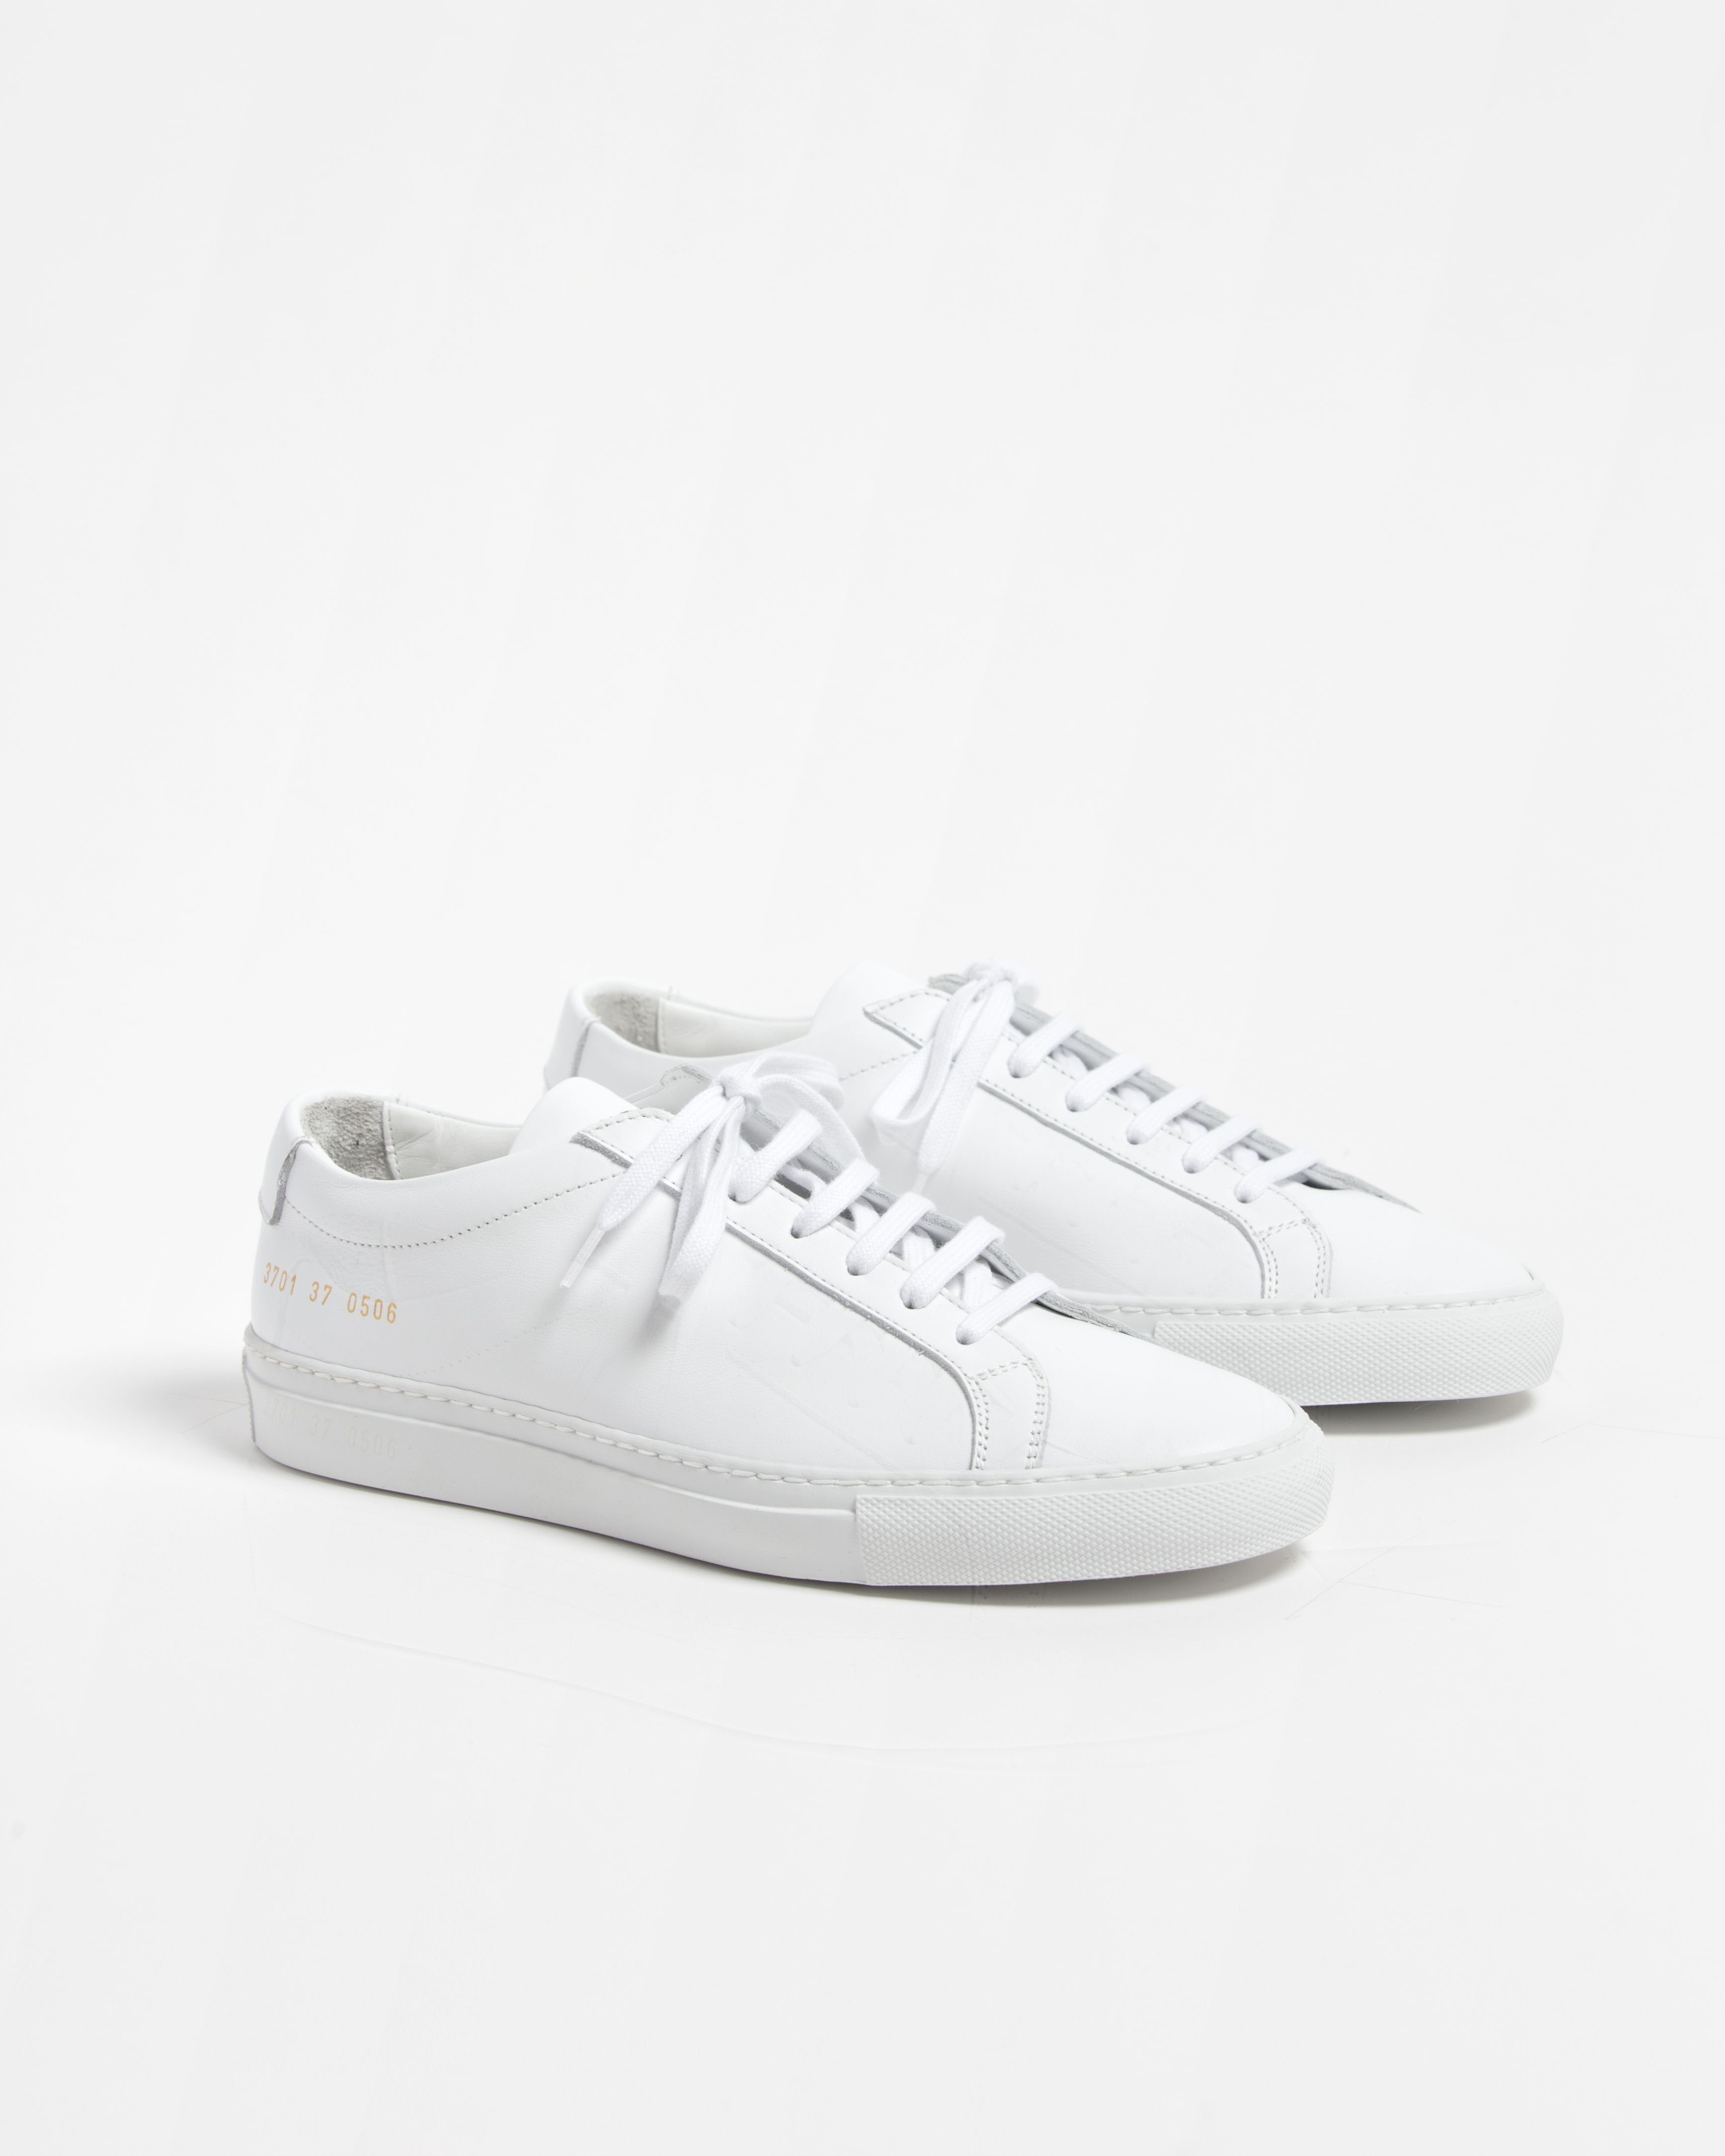 5a5d85cee6a Woman by Common Projects Original Achilles Low - White